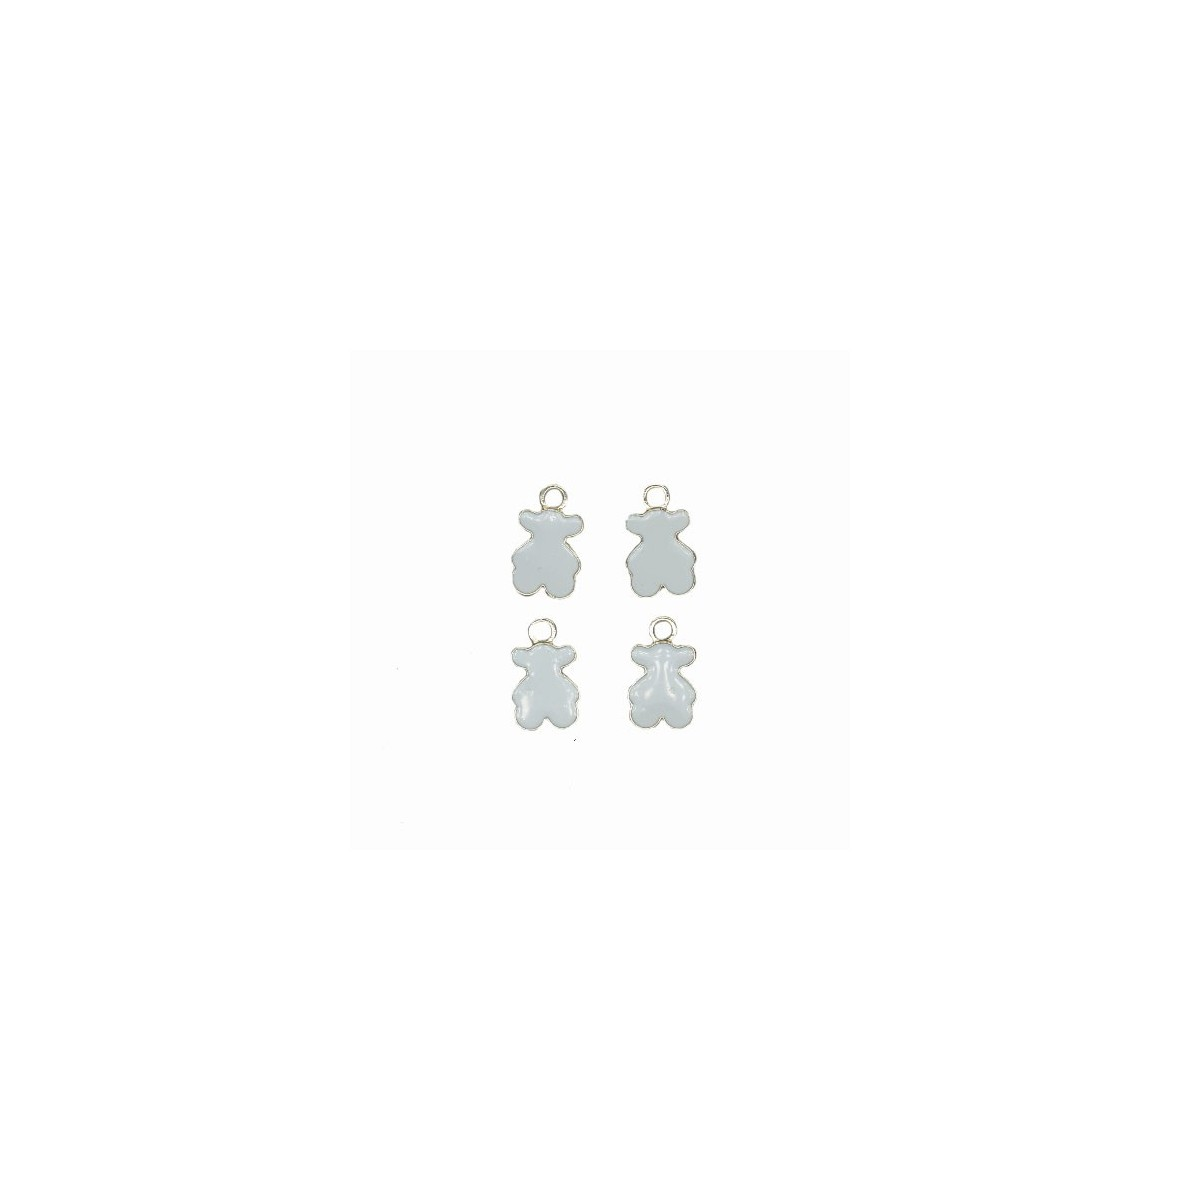 Charms Orsetto Bianco 15 mm - 4 pezzi